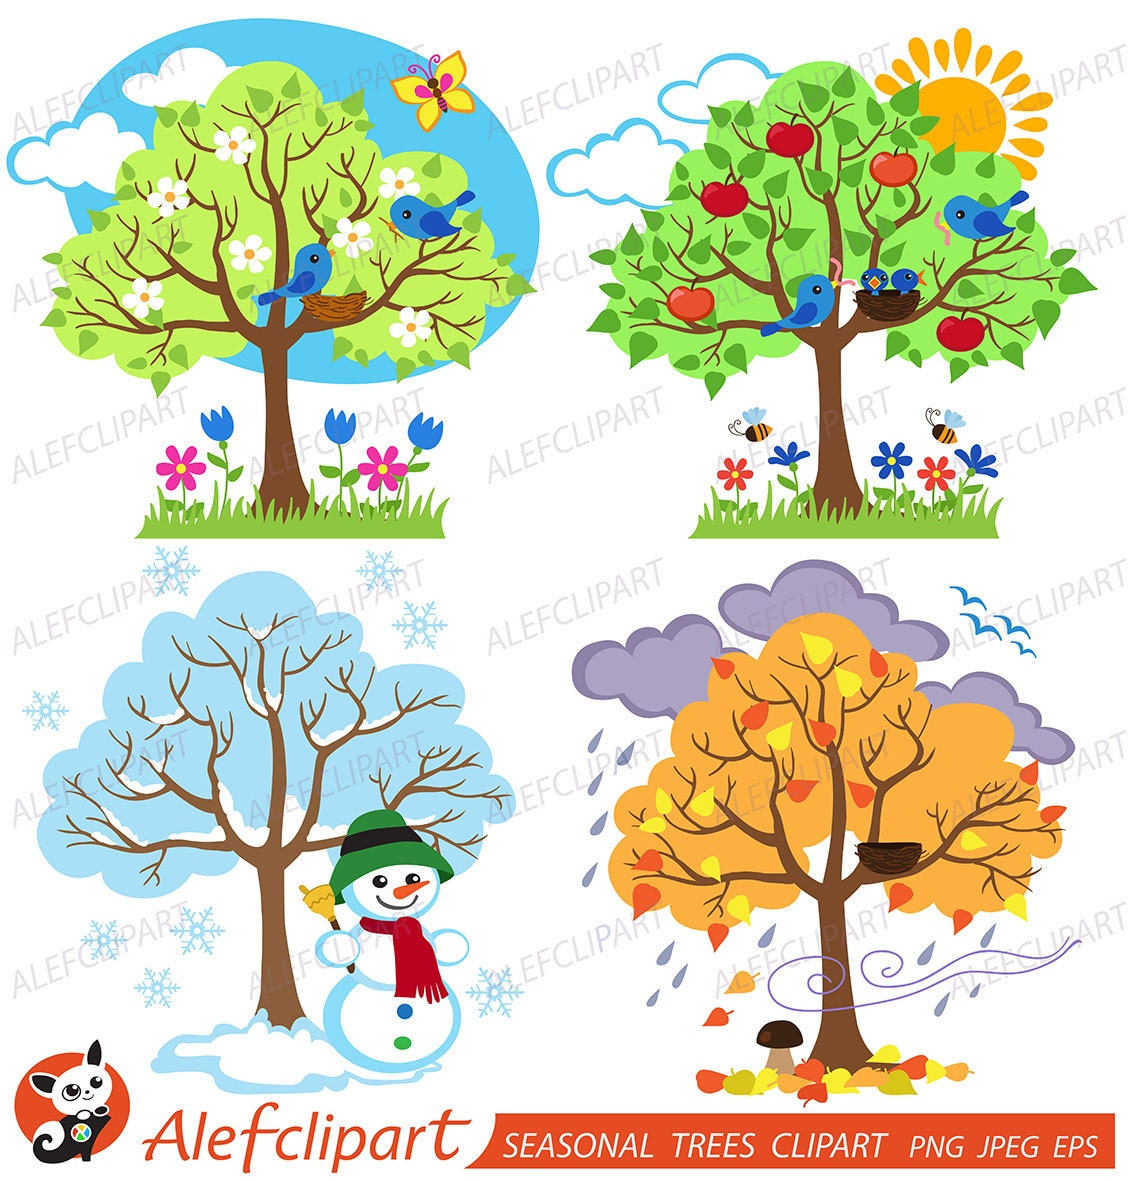 Four Seasons Trees Clipart Seasonal Trees and Birds Clipart